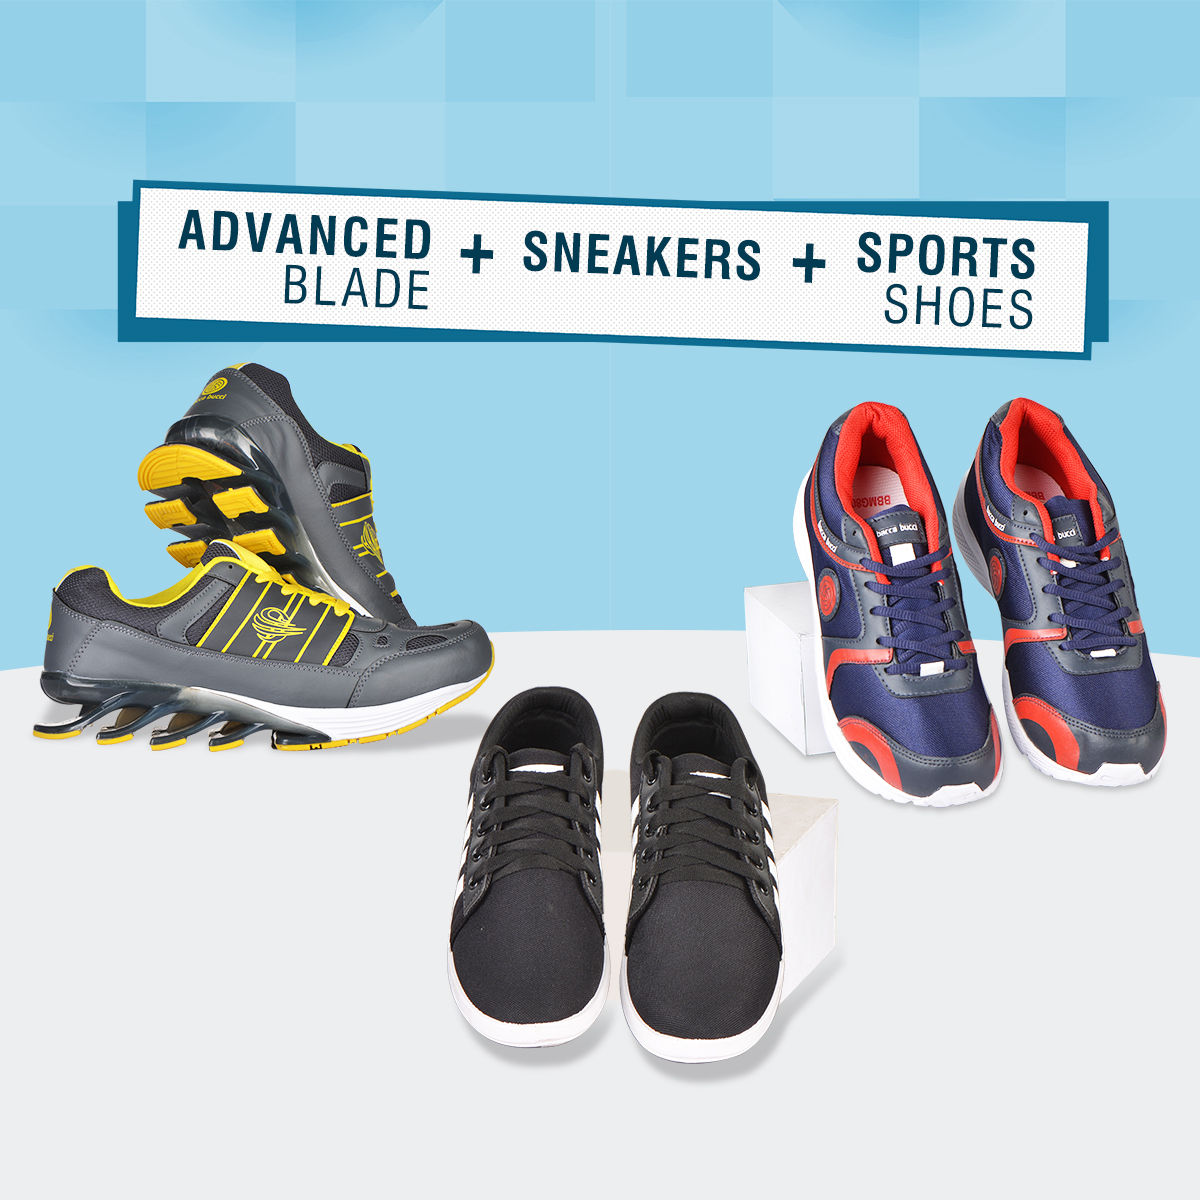 3206e4ea1dd7 Buy Advanced Blade + Sneakers + Sports Shoes Online at Best Price in India  on Naaptol.com